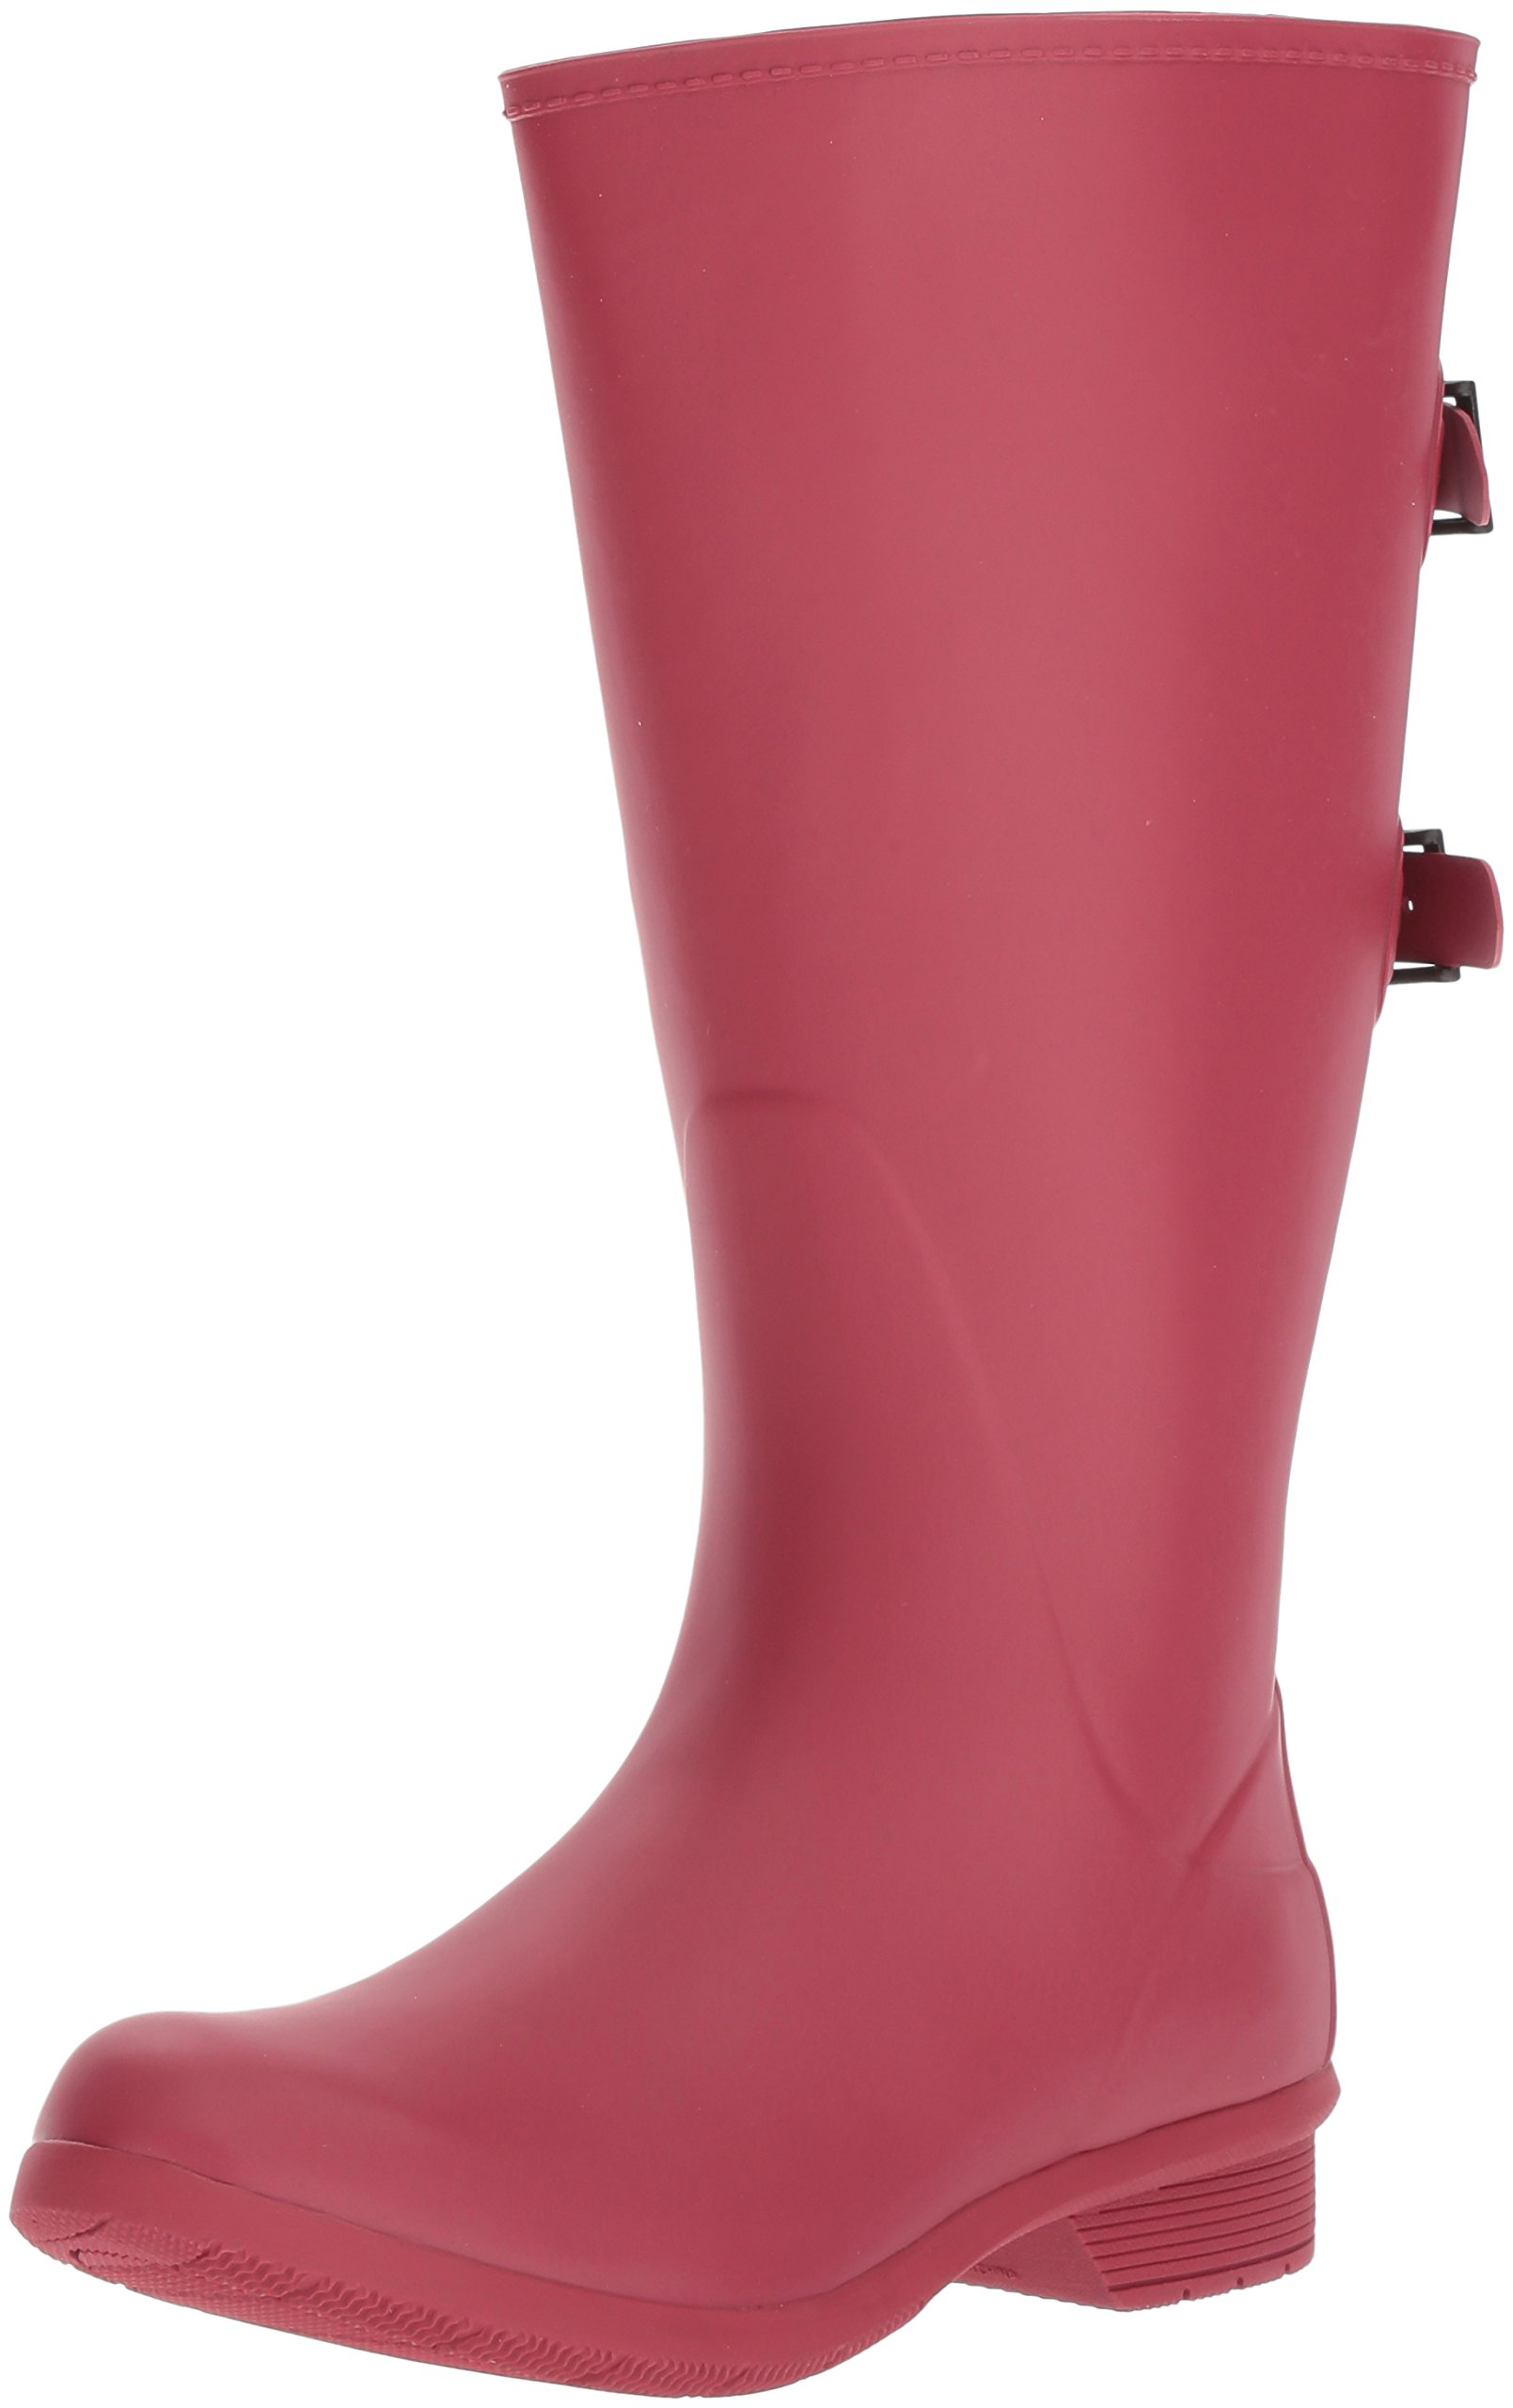 Chooka Women's Wide Calf Memory Foam Rain Boot, Raspberry, 9 M US